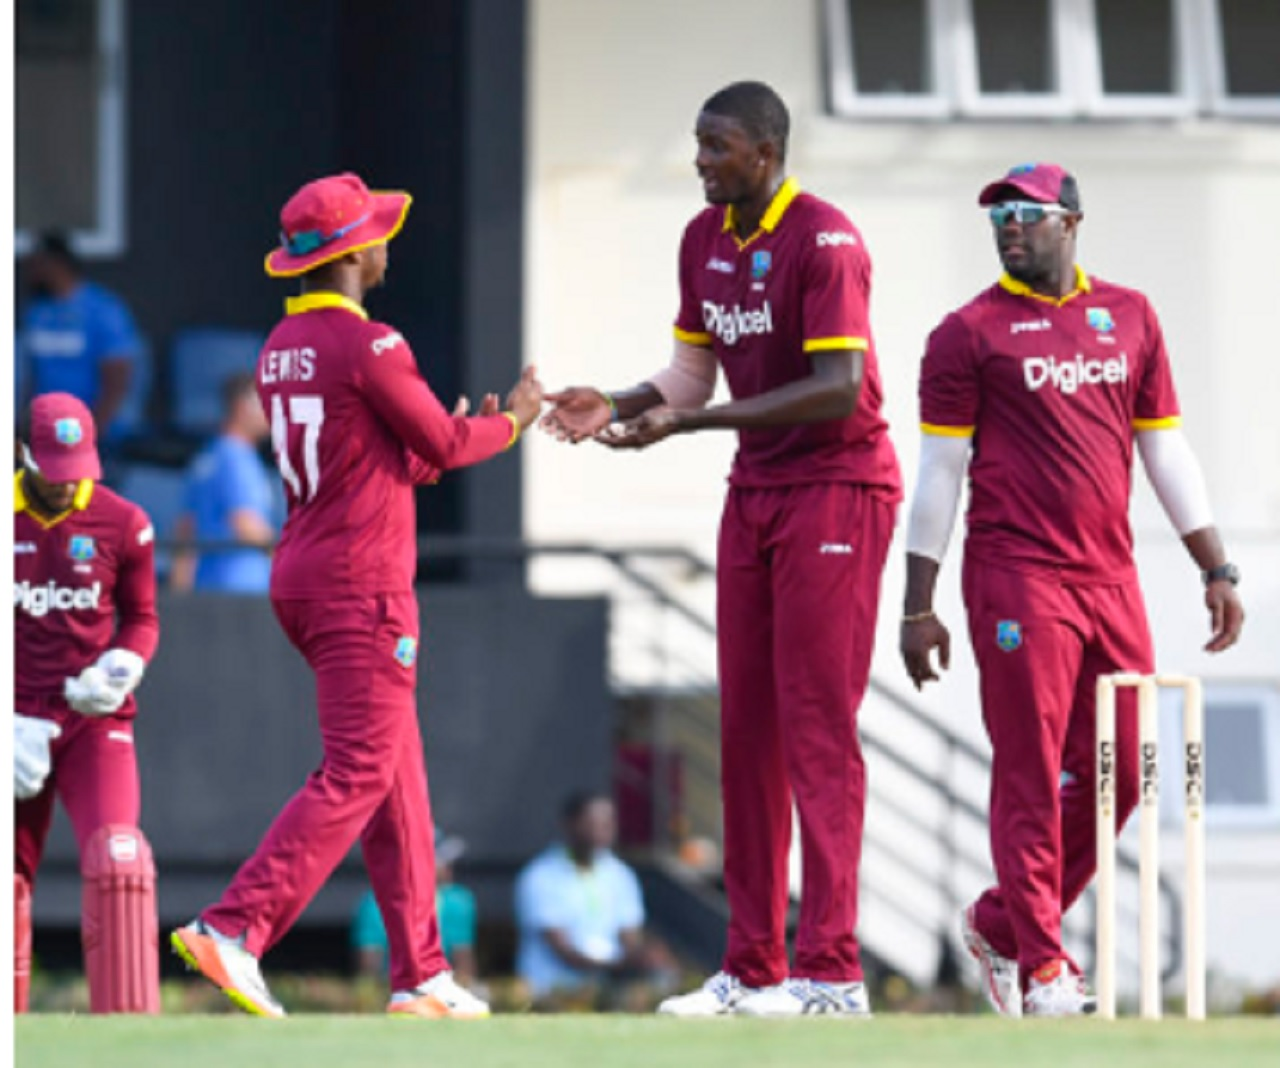 West Indies players celebrating.